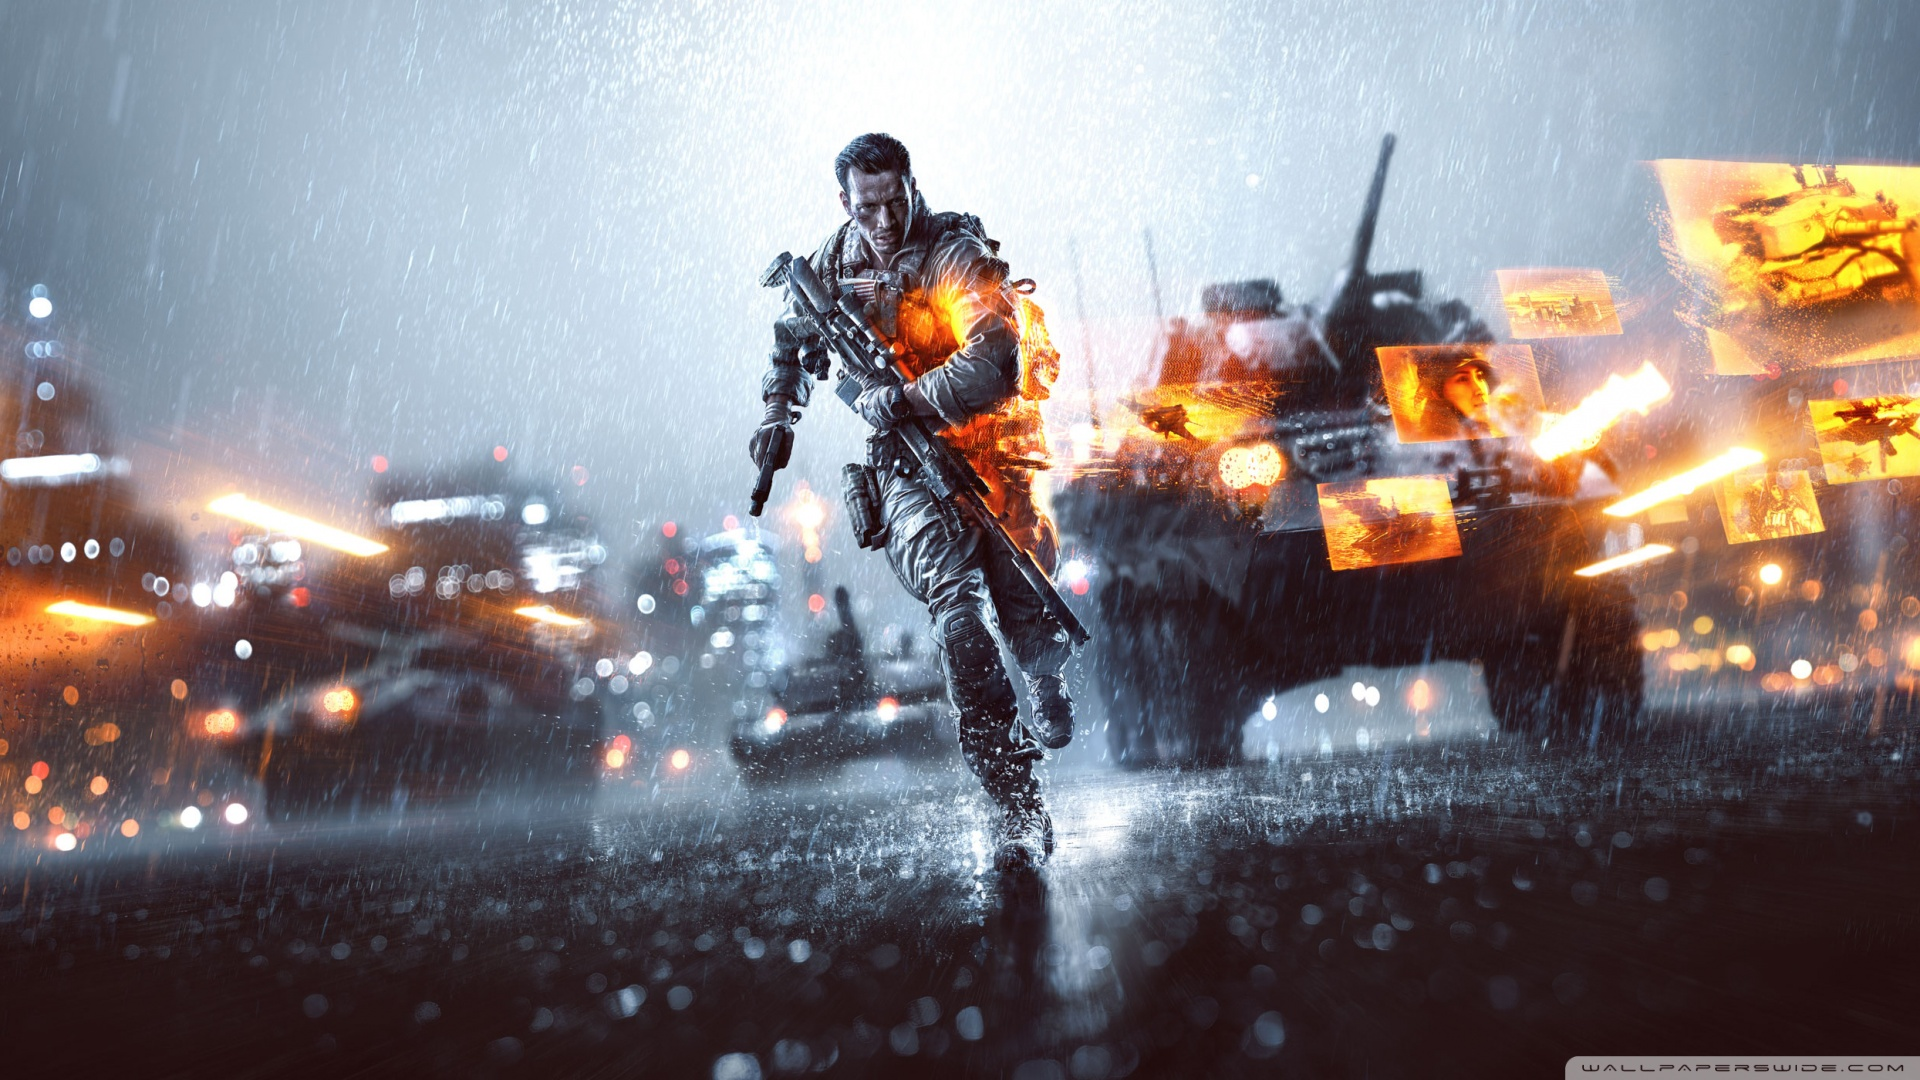 Battlefield 4 HD desktop wallpaper : Widescreen : High Definition